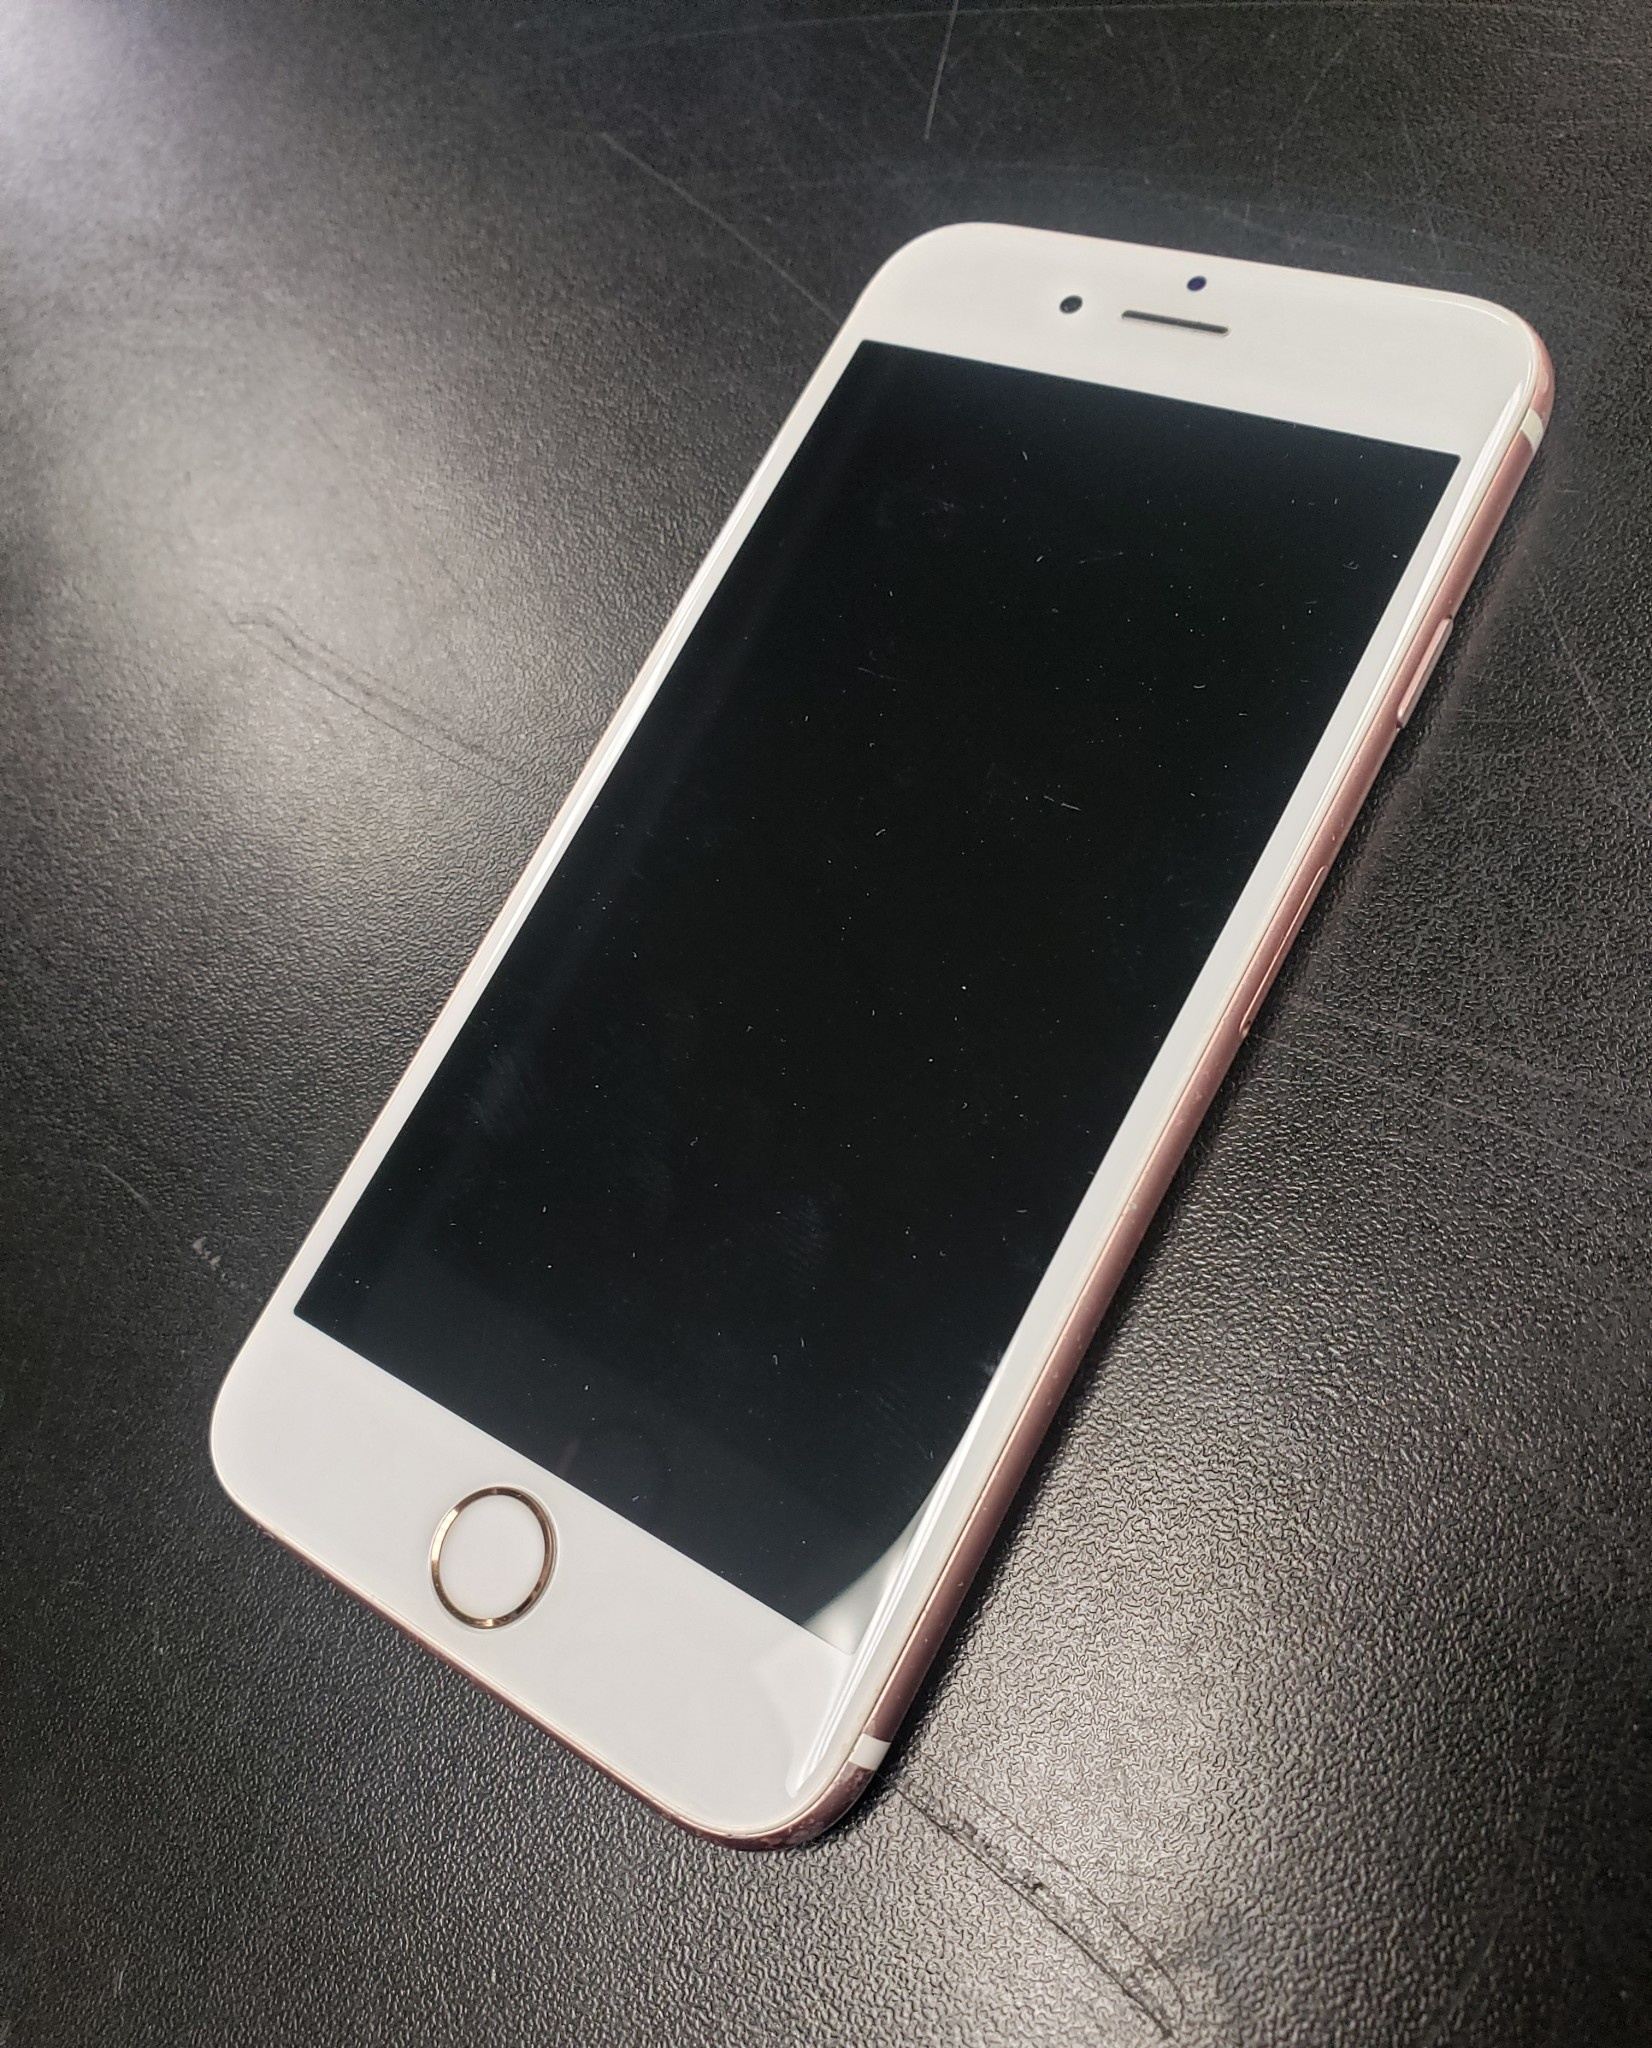 AT&T/Cricket  - Apple iPhone 6s - 128GB - Rose Gold - Fair Condition